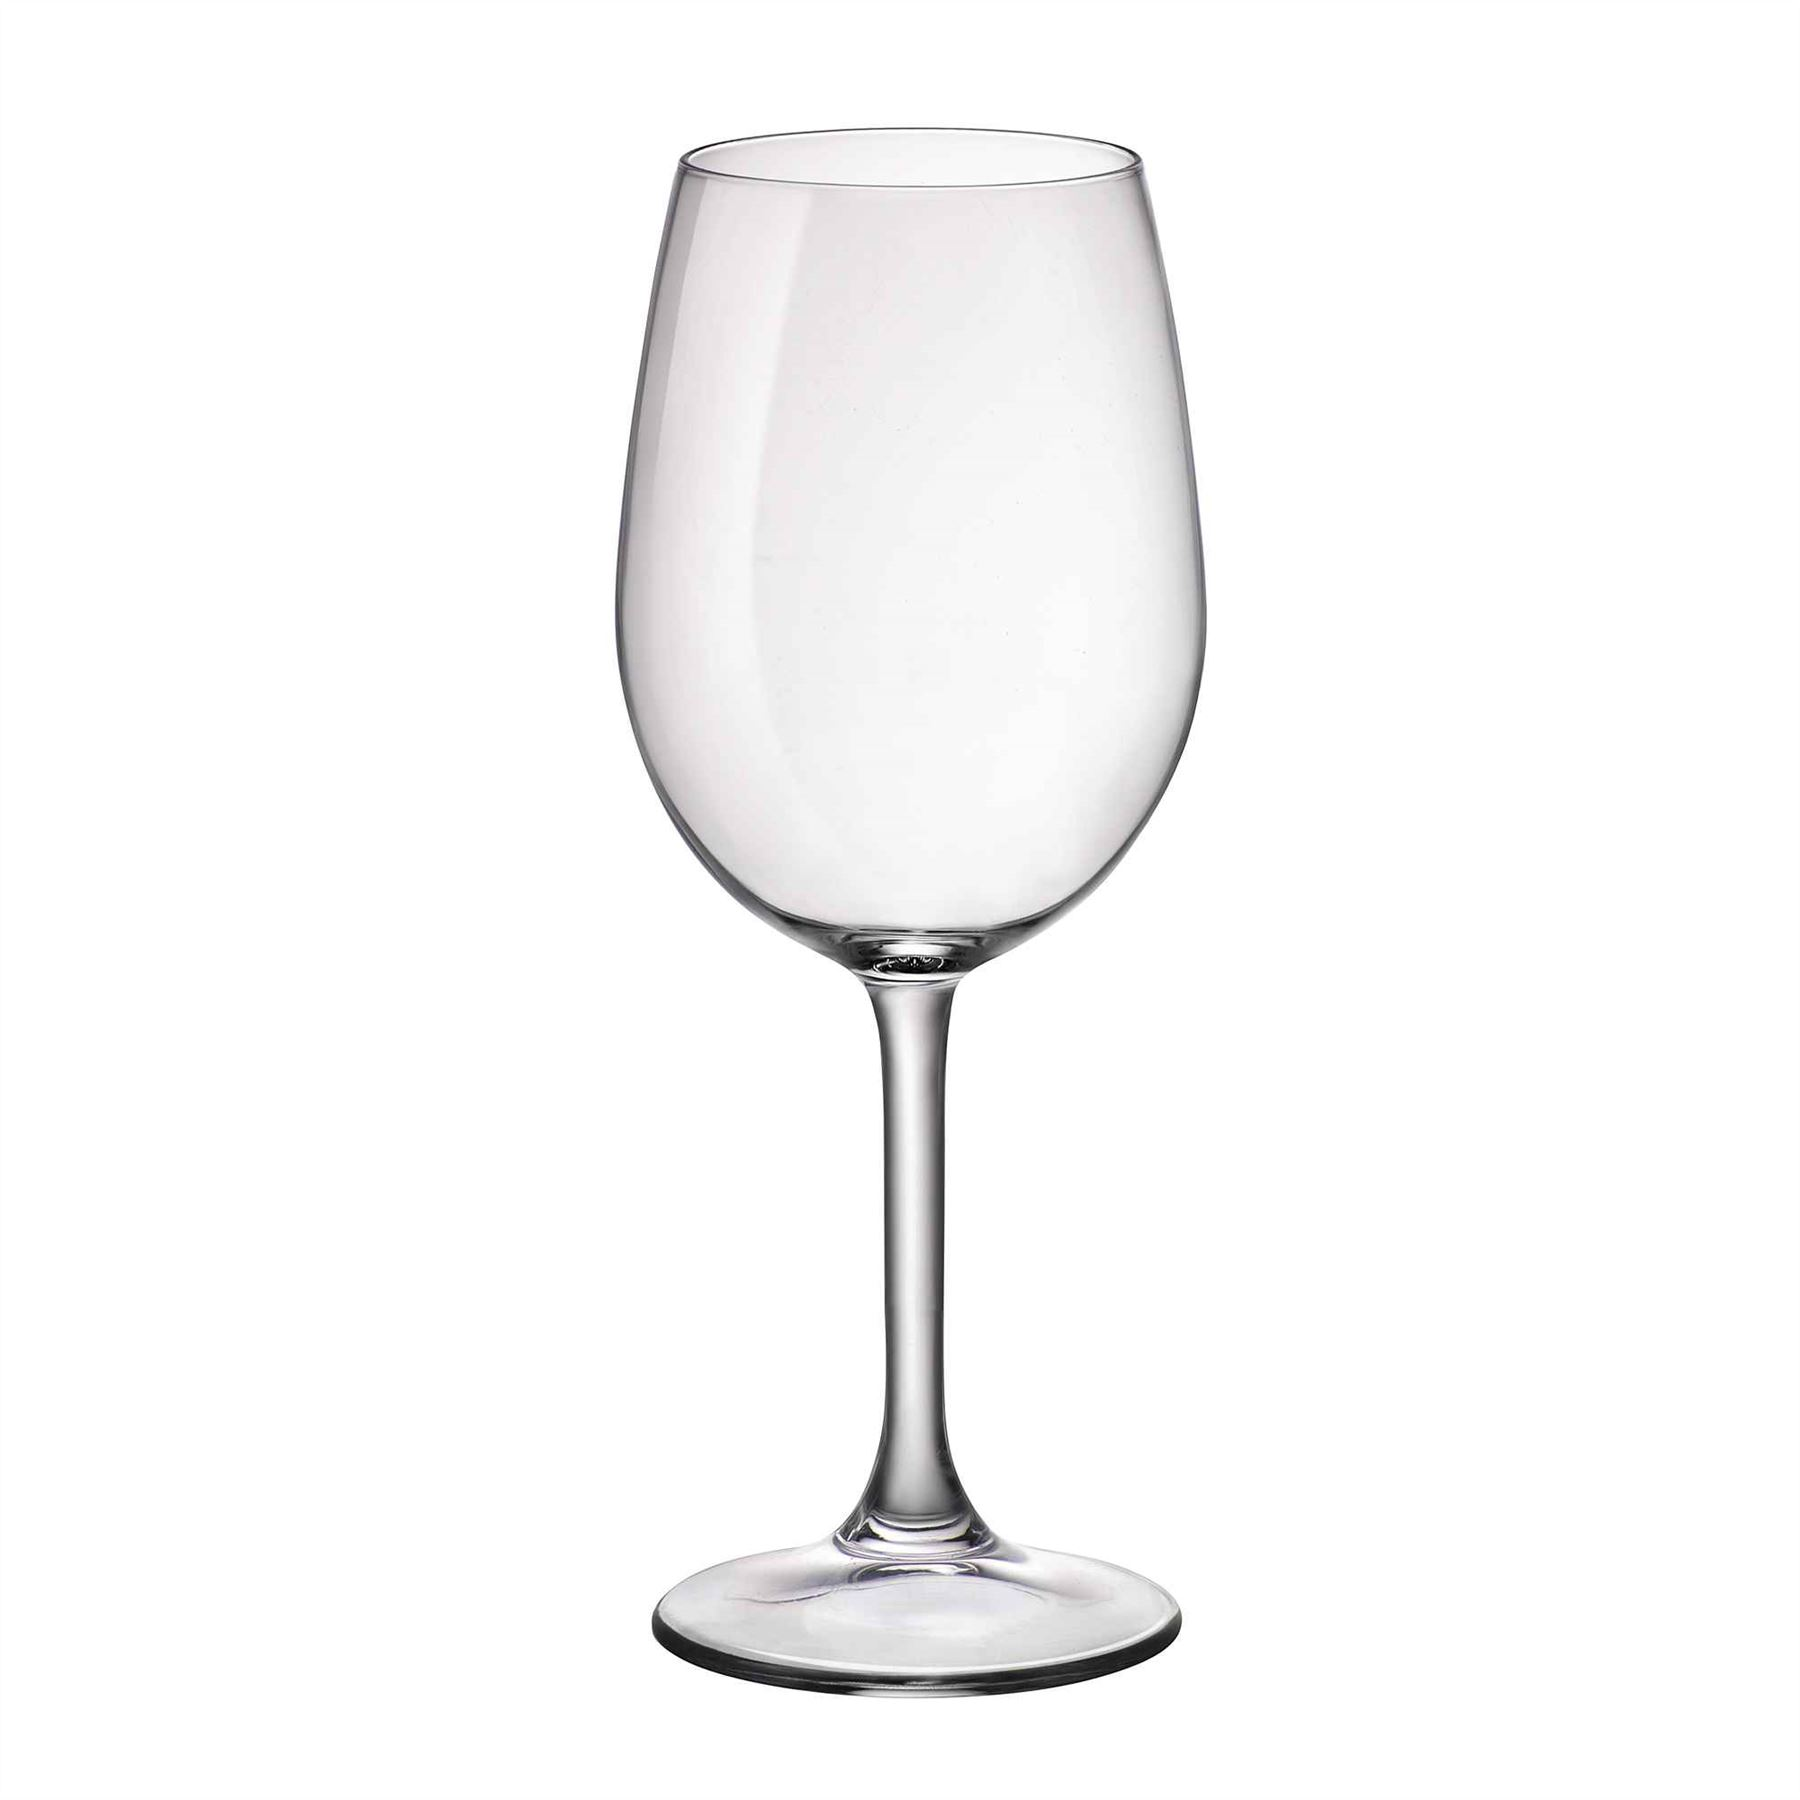 Riedel Glas From Ikea To Riedel We Put 5 Wine Glasses To The Test